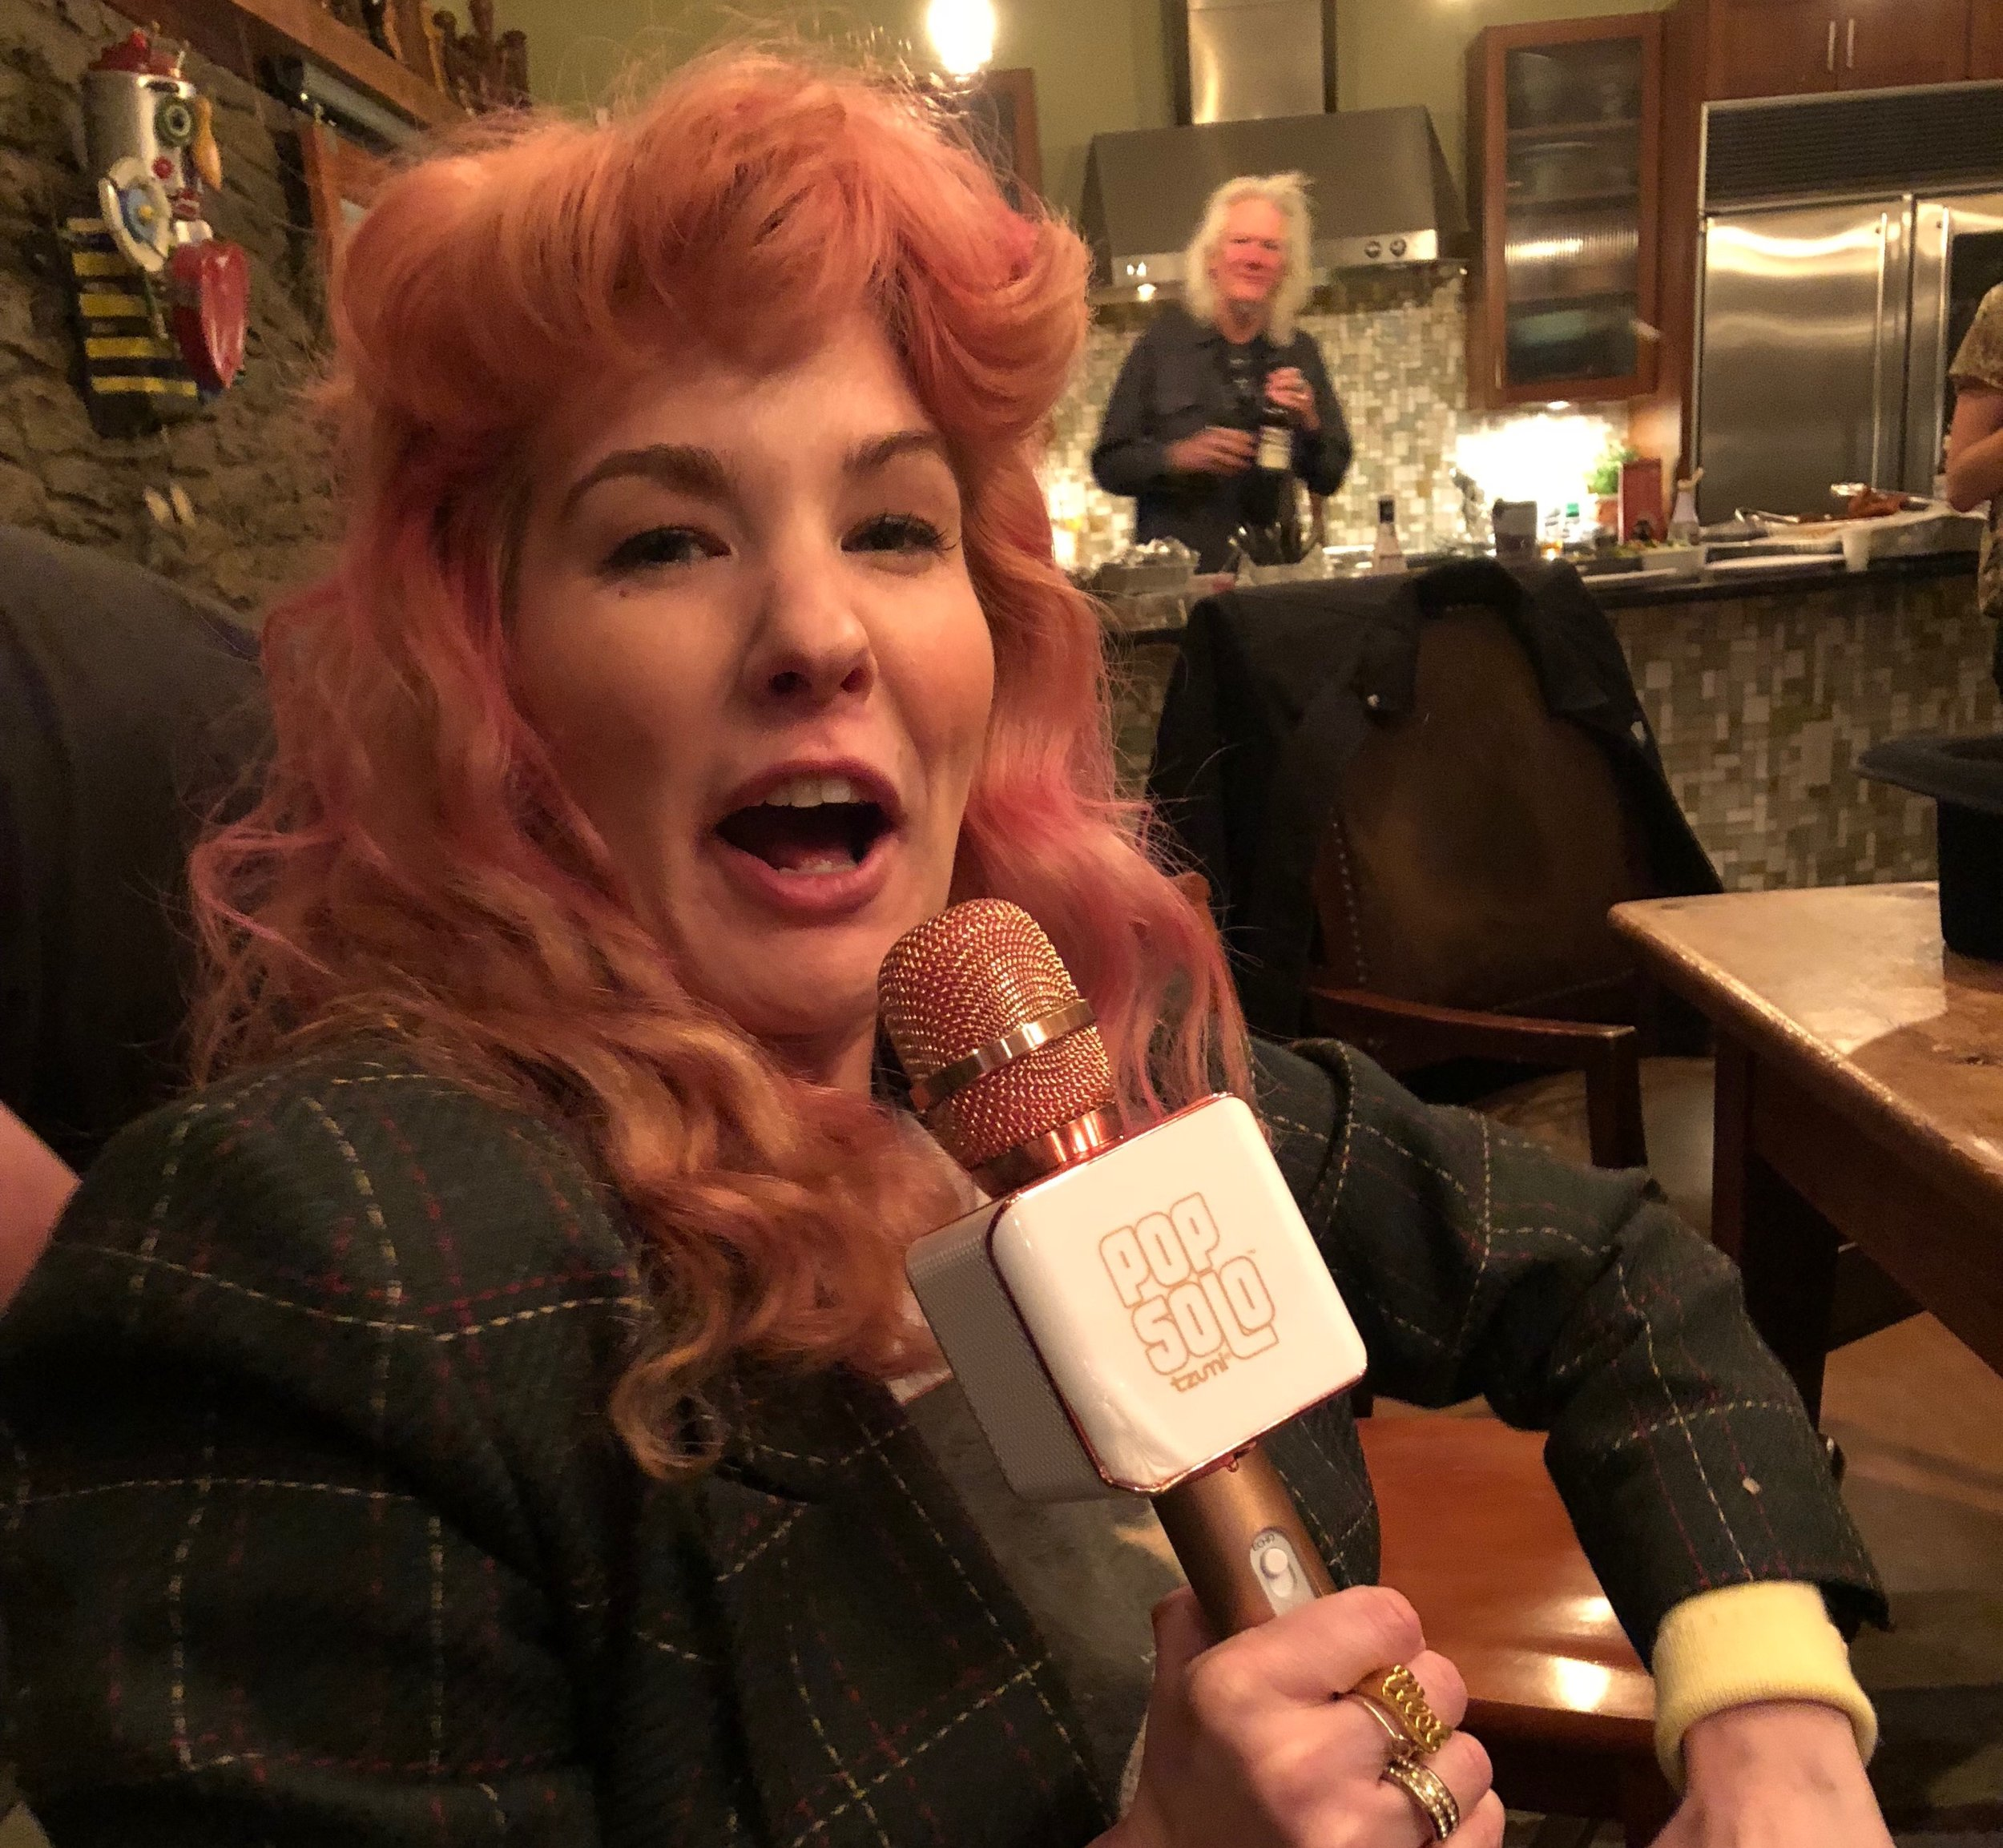 Check out her $19.99 Pop Solo mic! I need one of these too! (That's Skip in the back).